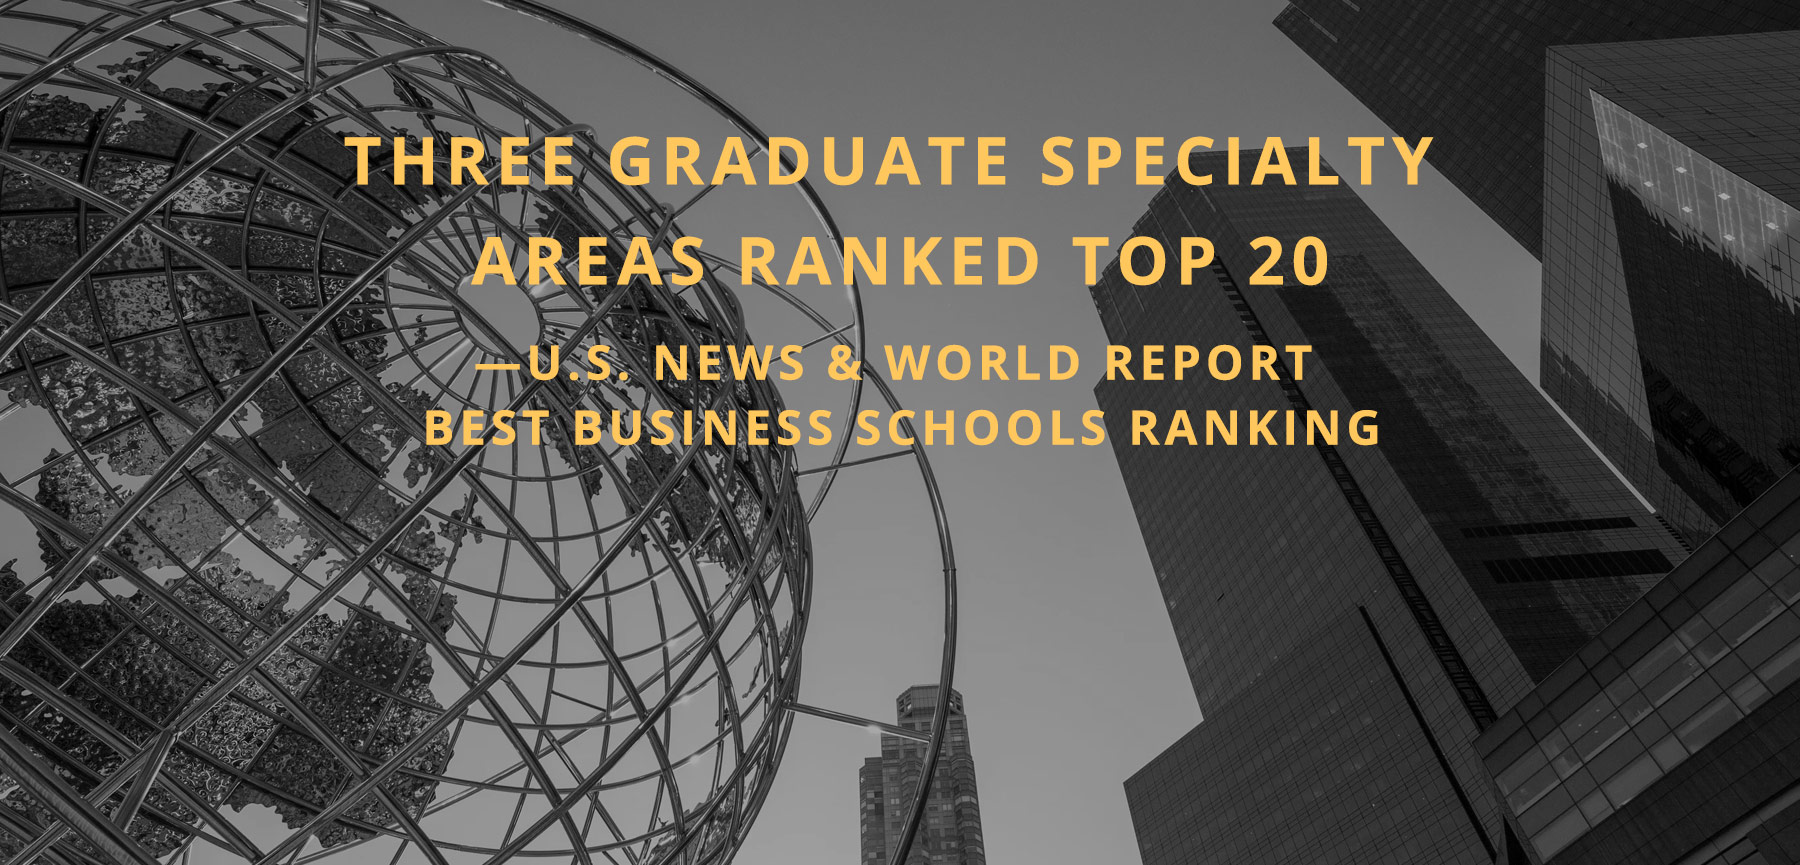 Three Graduate Specialty Areas Ranked Top 20